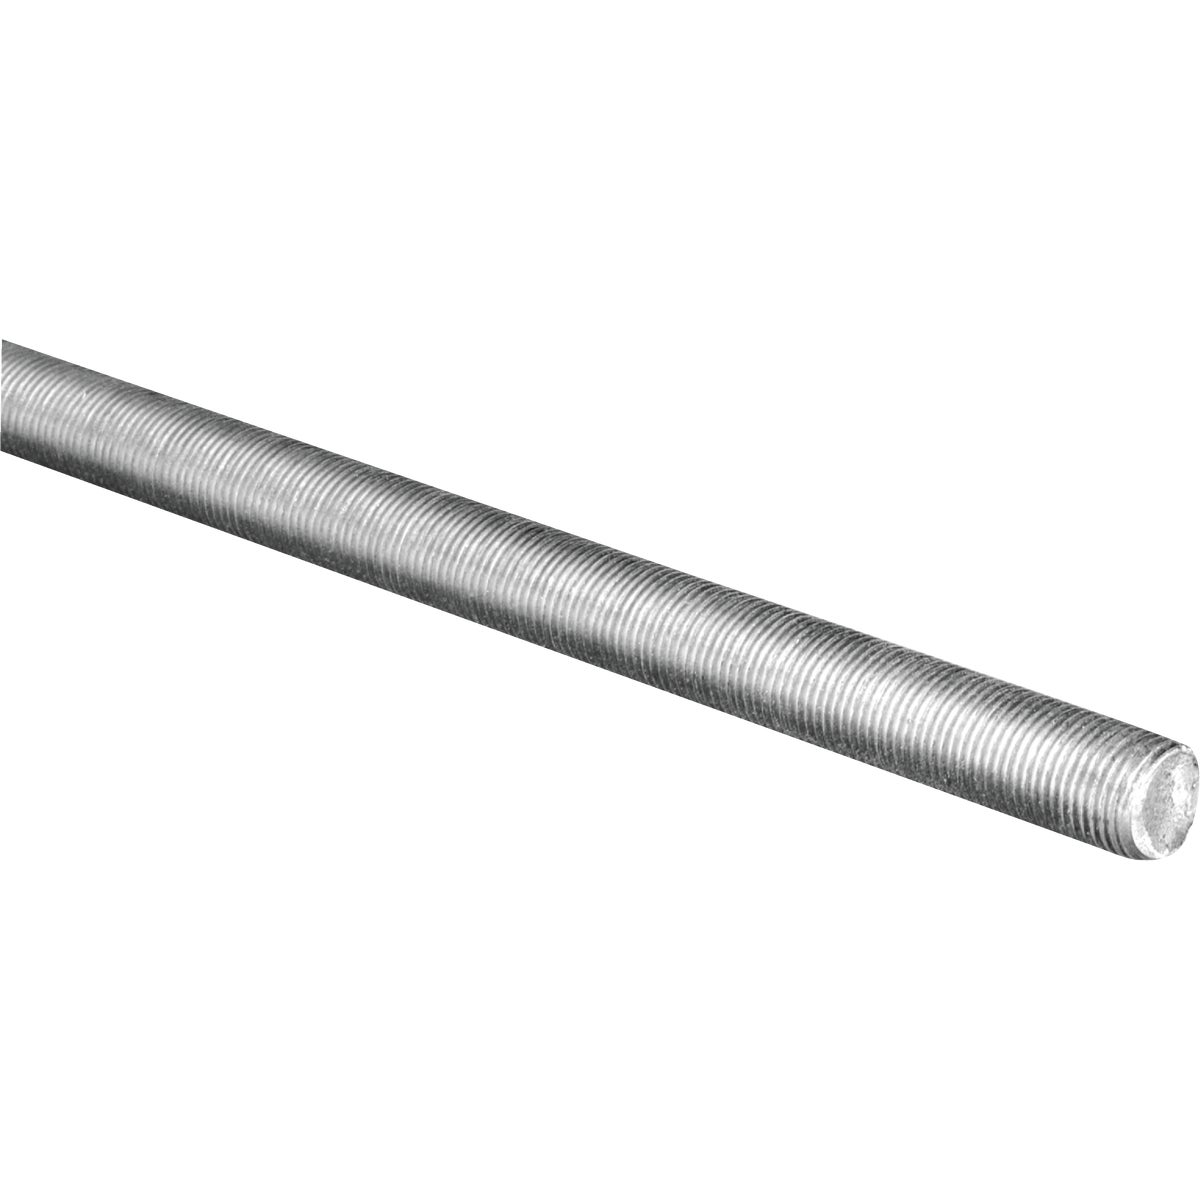 7/16-20X3' THREADED ROD - N218305 by National Mfg Co